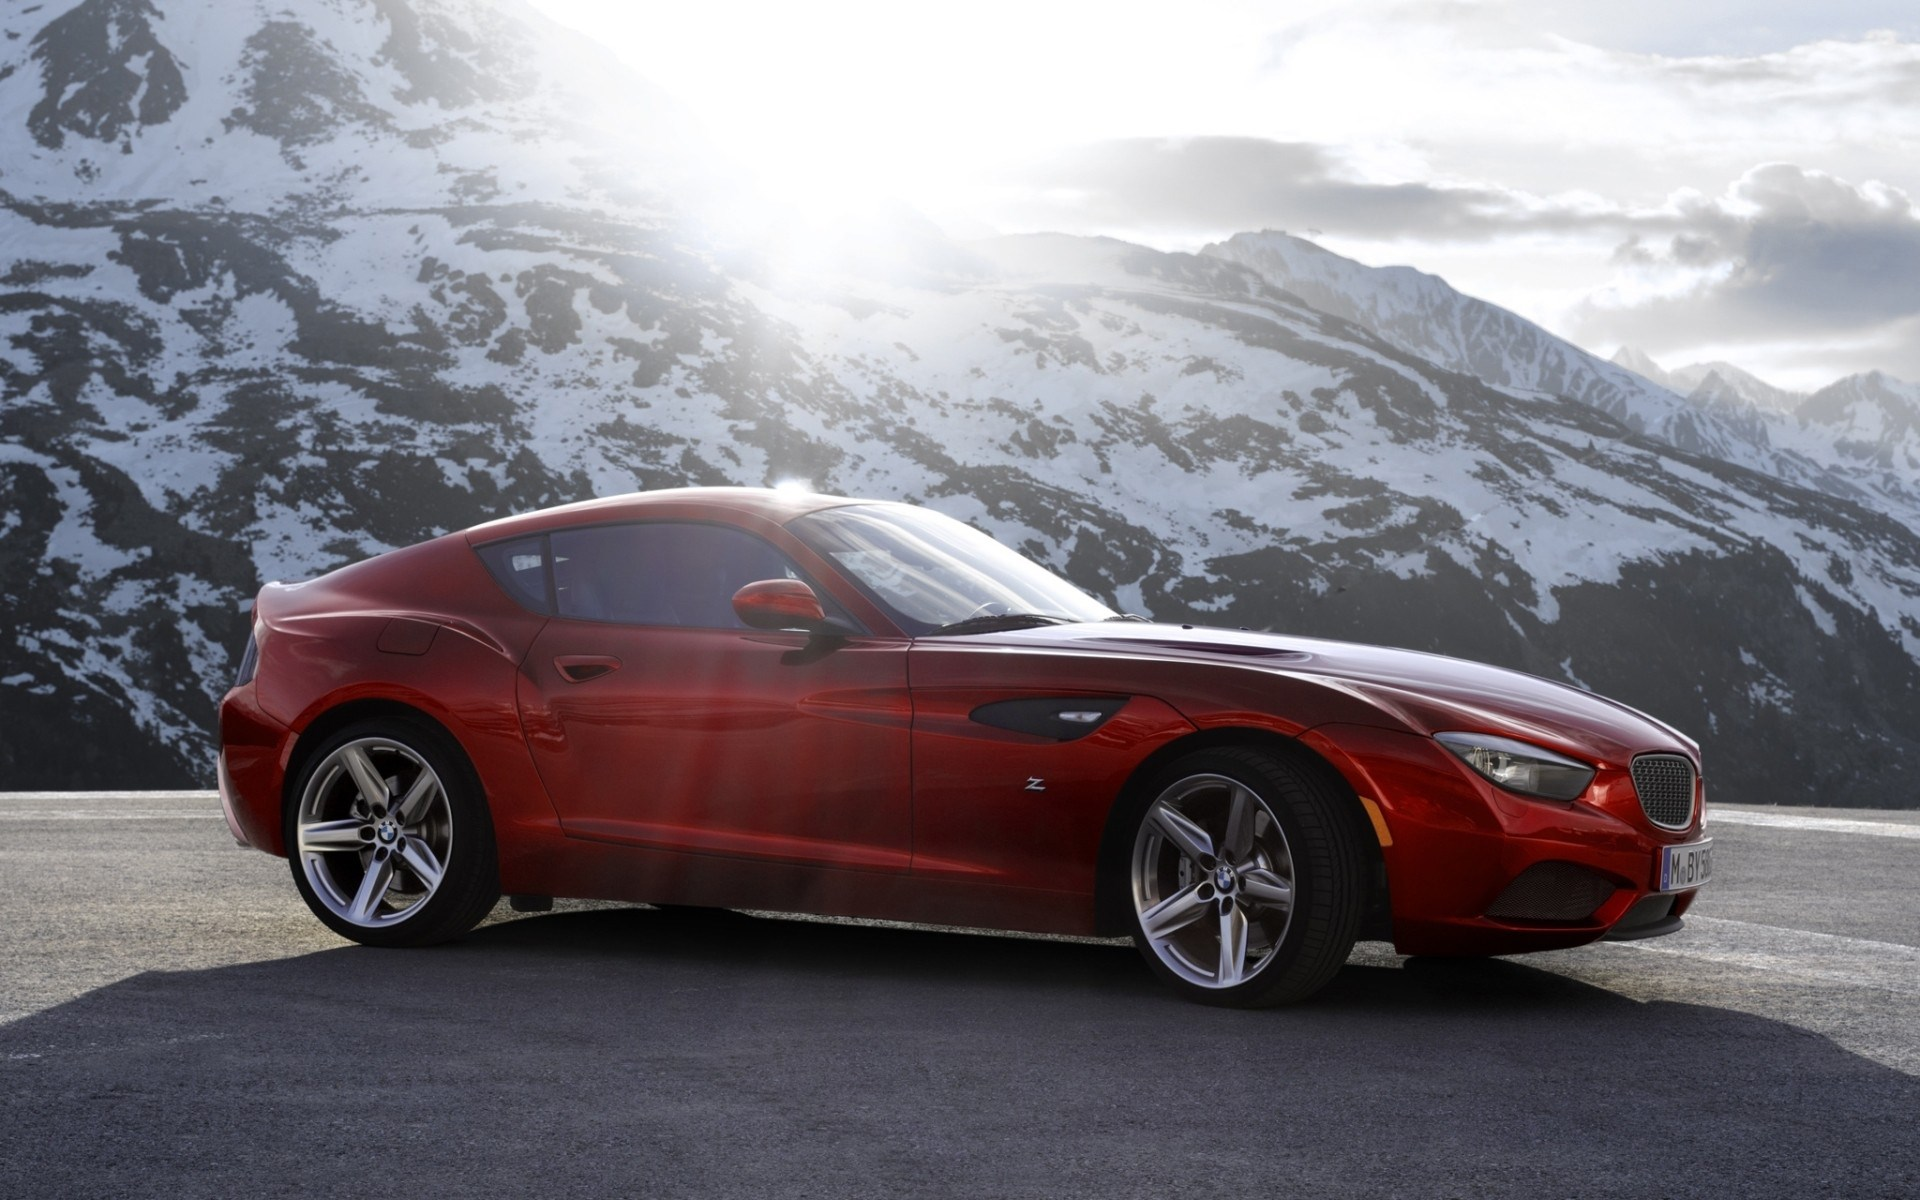 1920x1200 - BMW Zagato Coupe Wallpapers 17